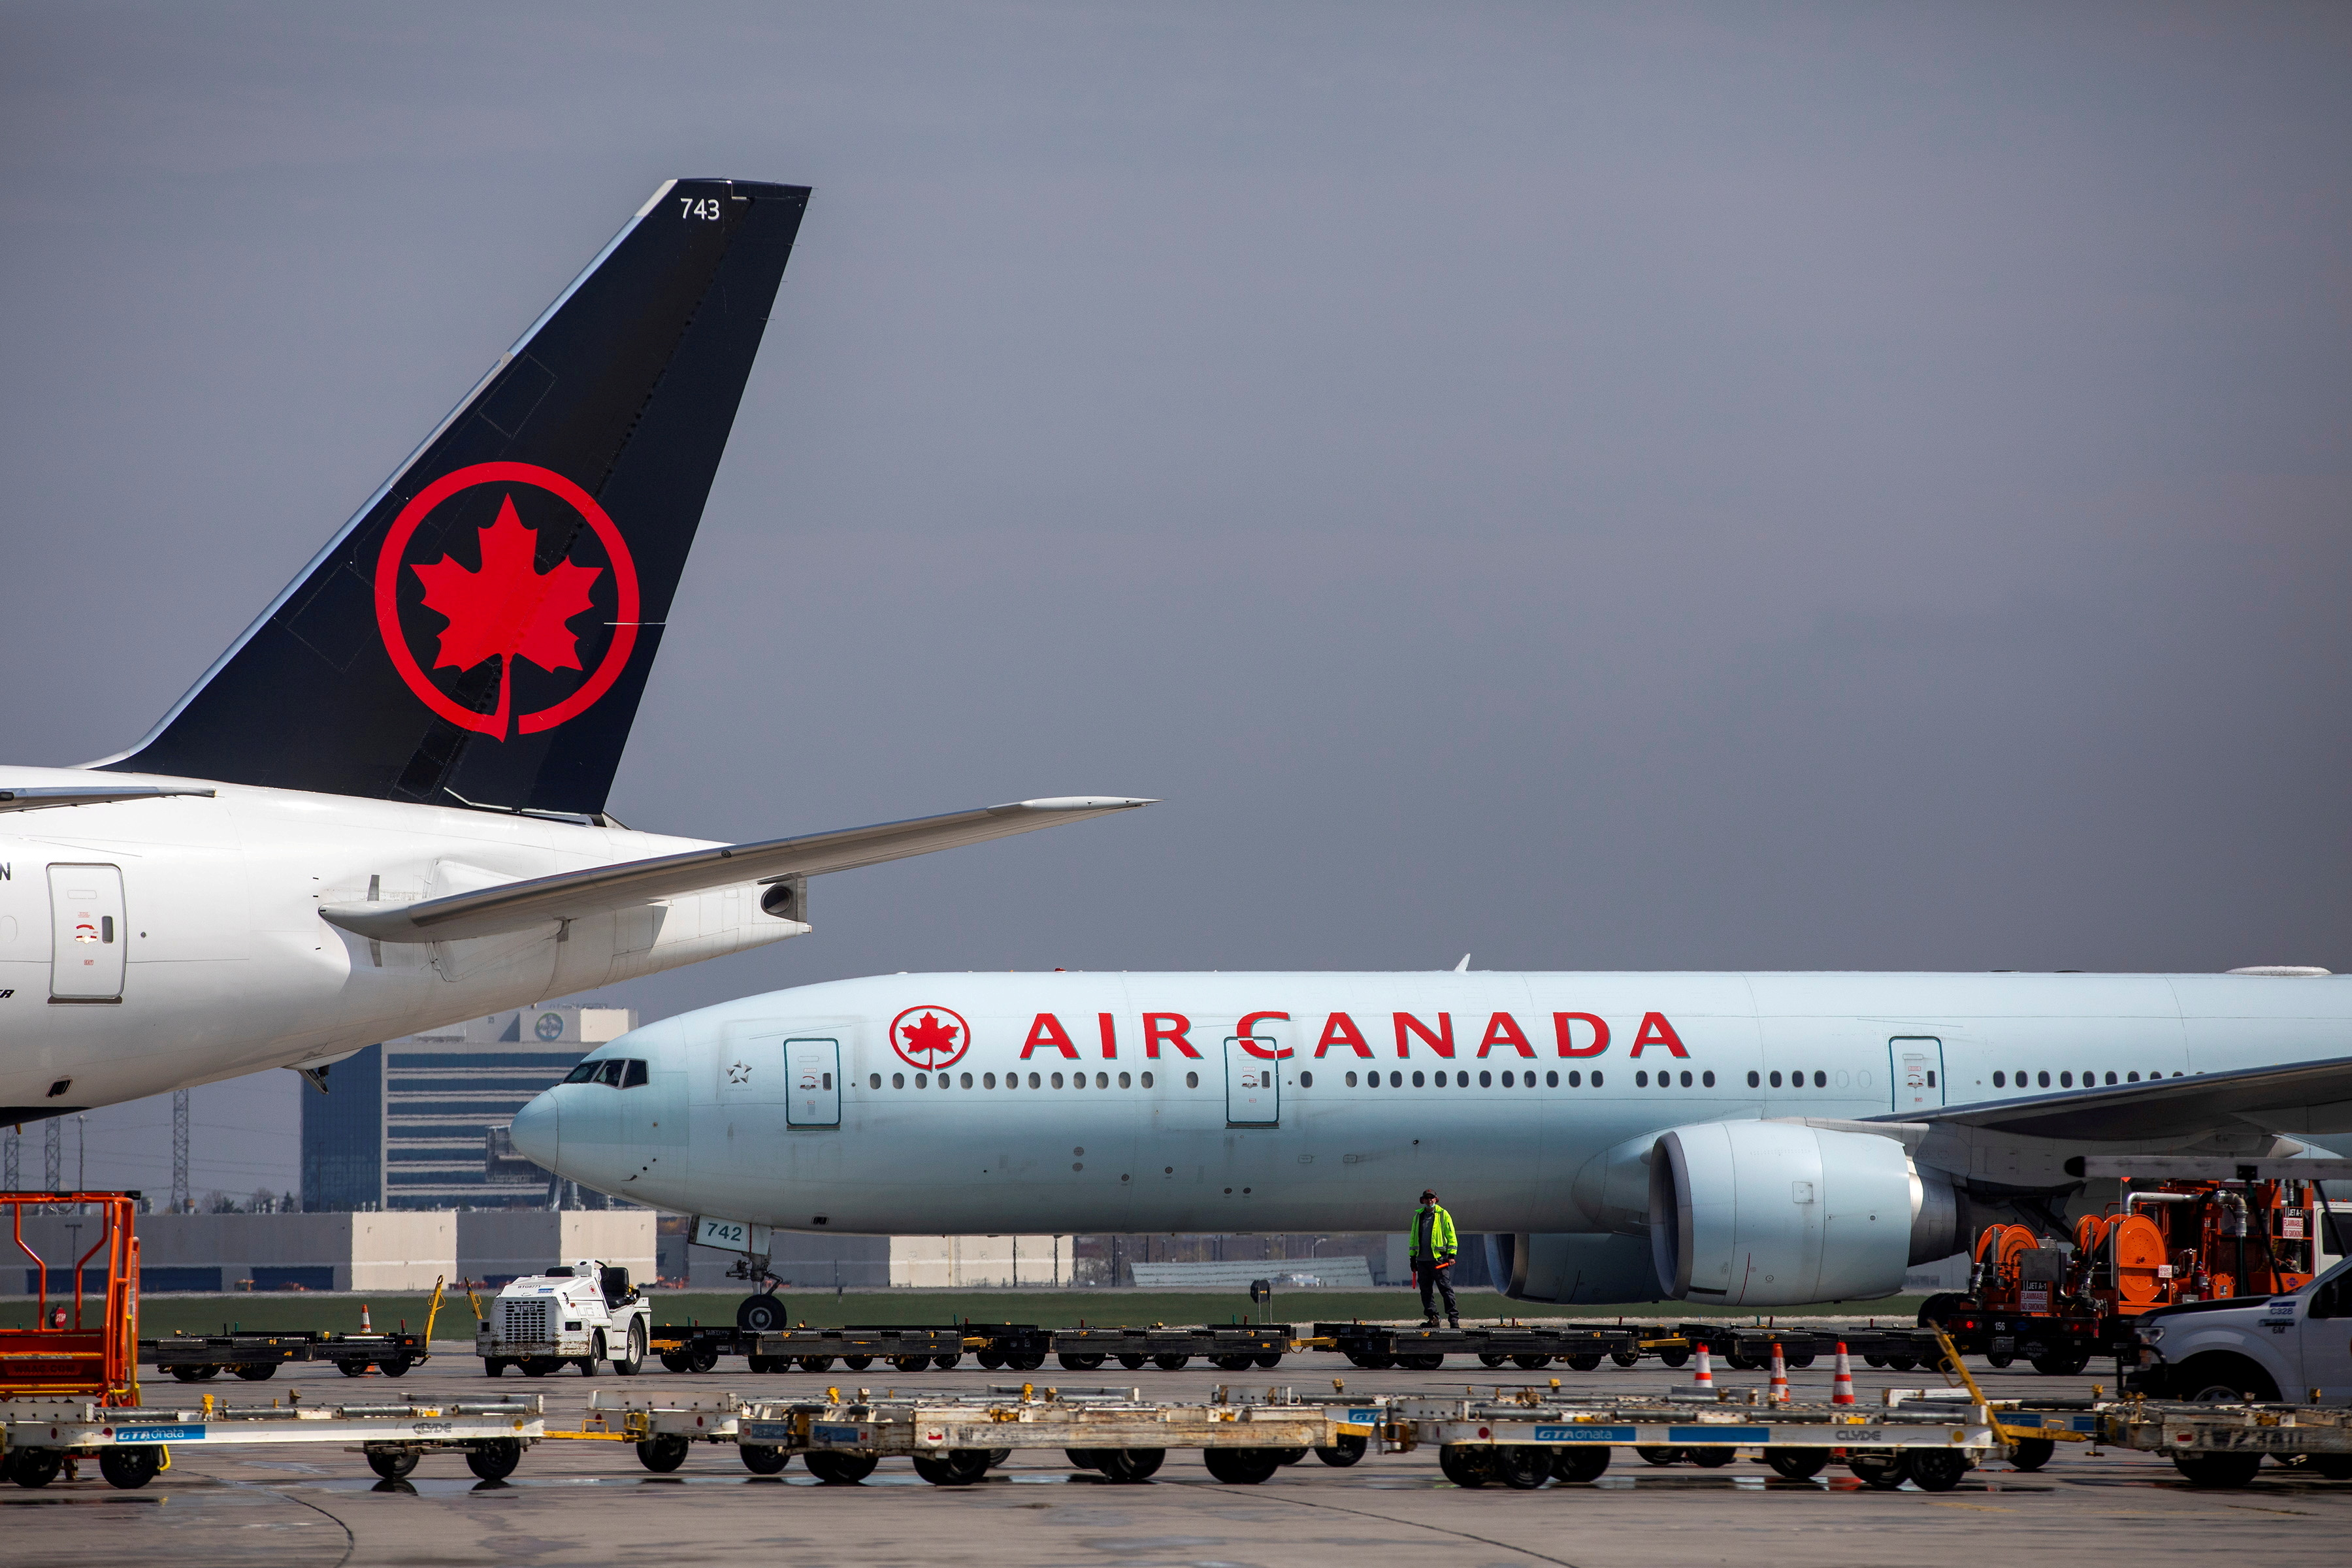 Air Canada planes are parked at Toronto Pearson Airport in Mississauga, Ontario, Canada April 28, 2021. REUTERS/Carlos Osorio/File Photo